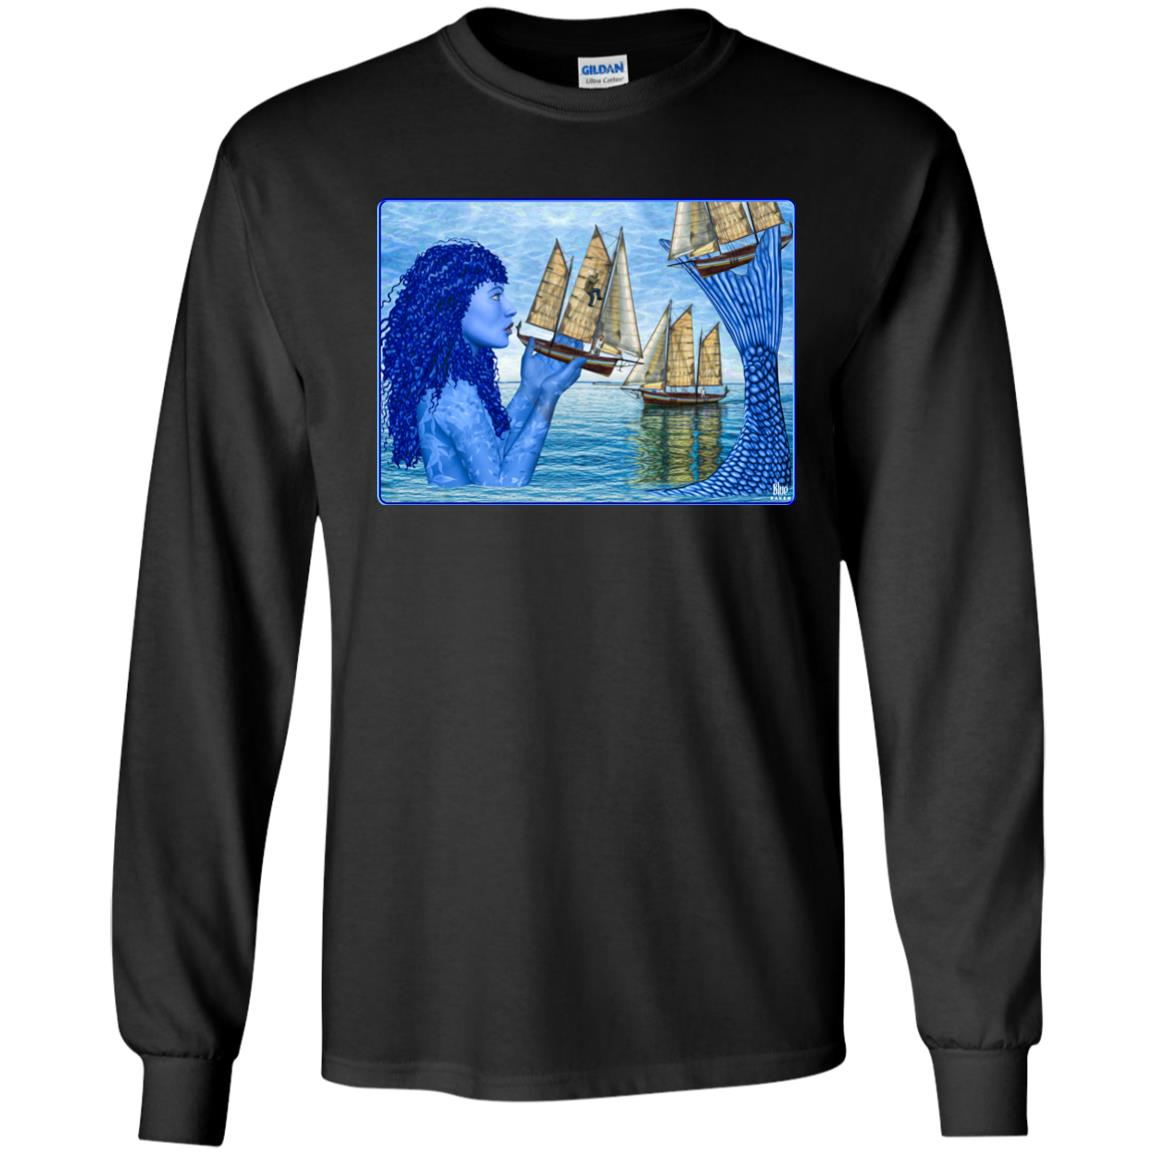 I Saw Three Ships - Youth Long Sleeve T-Shirt